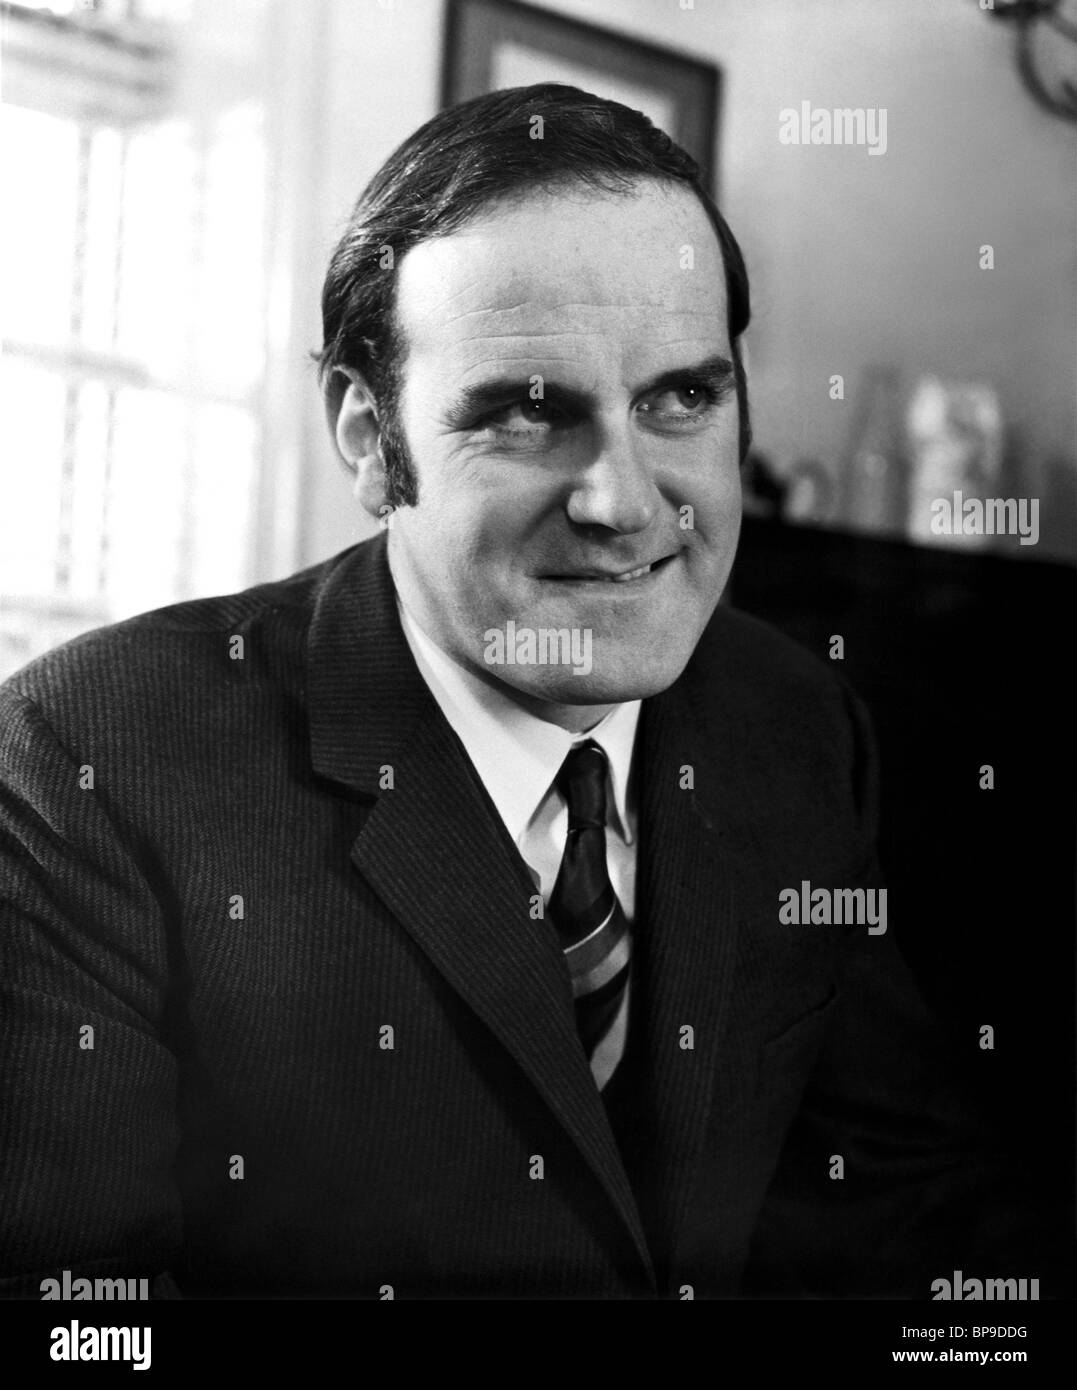 JOHN CLEESE MONTY PYTHON'S; AND NOW FOR SOMETHING COMPLETELY DIFFERENT (1971) - Stock Image